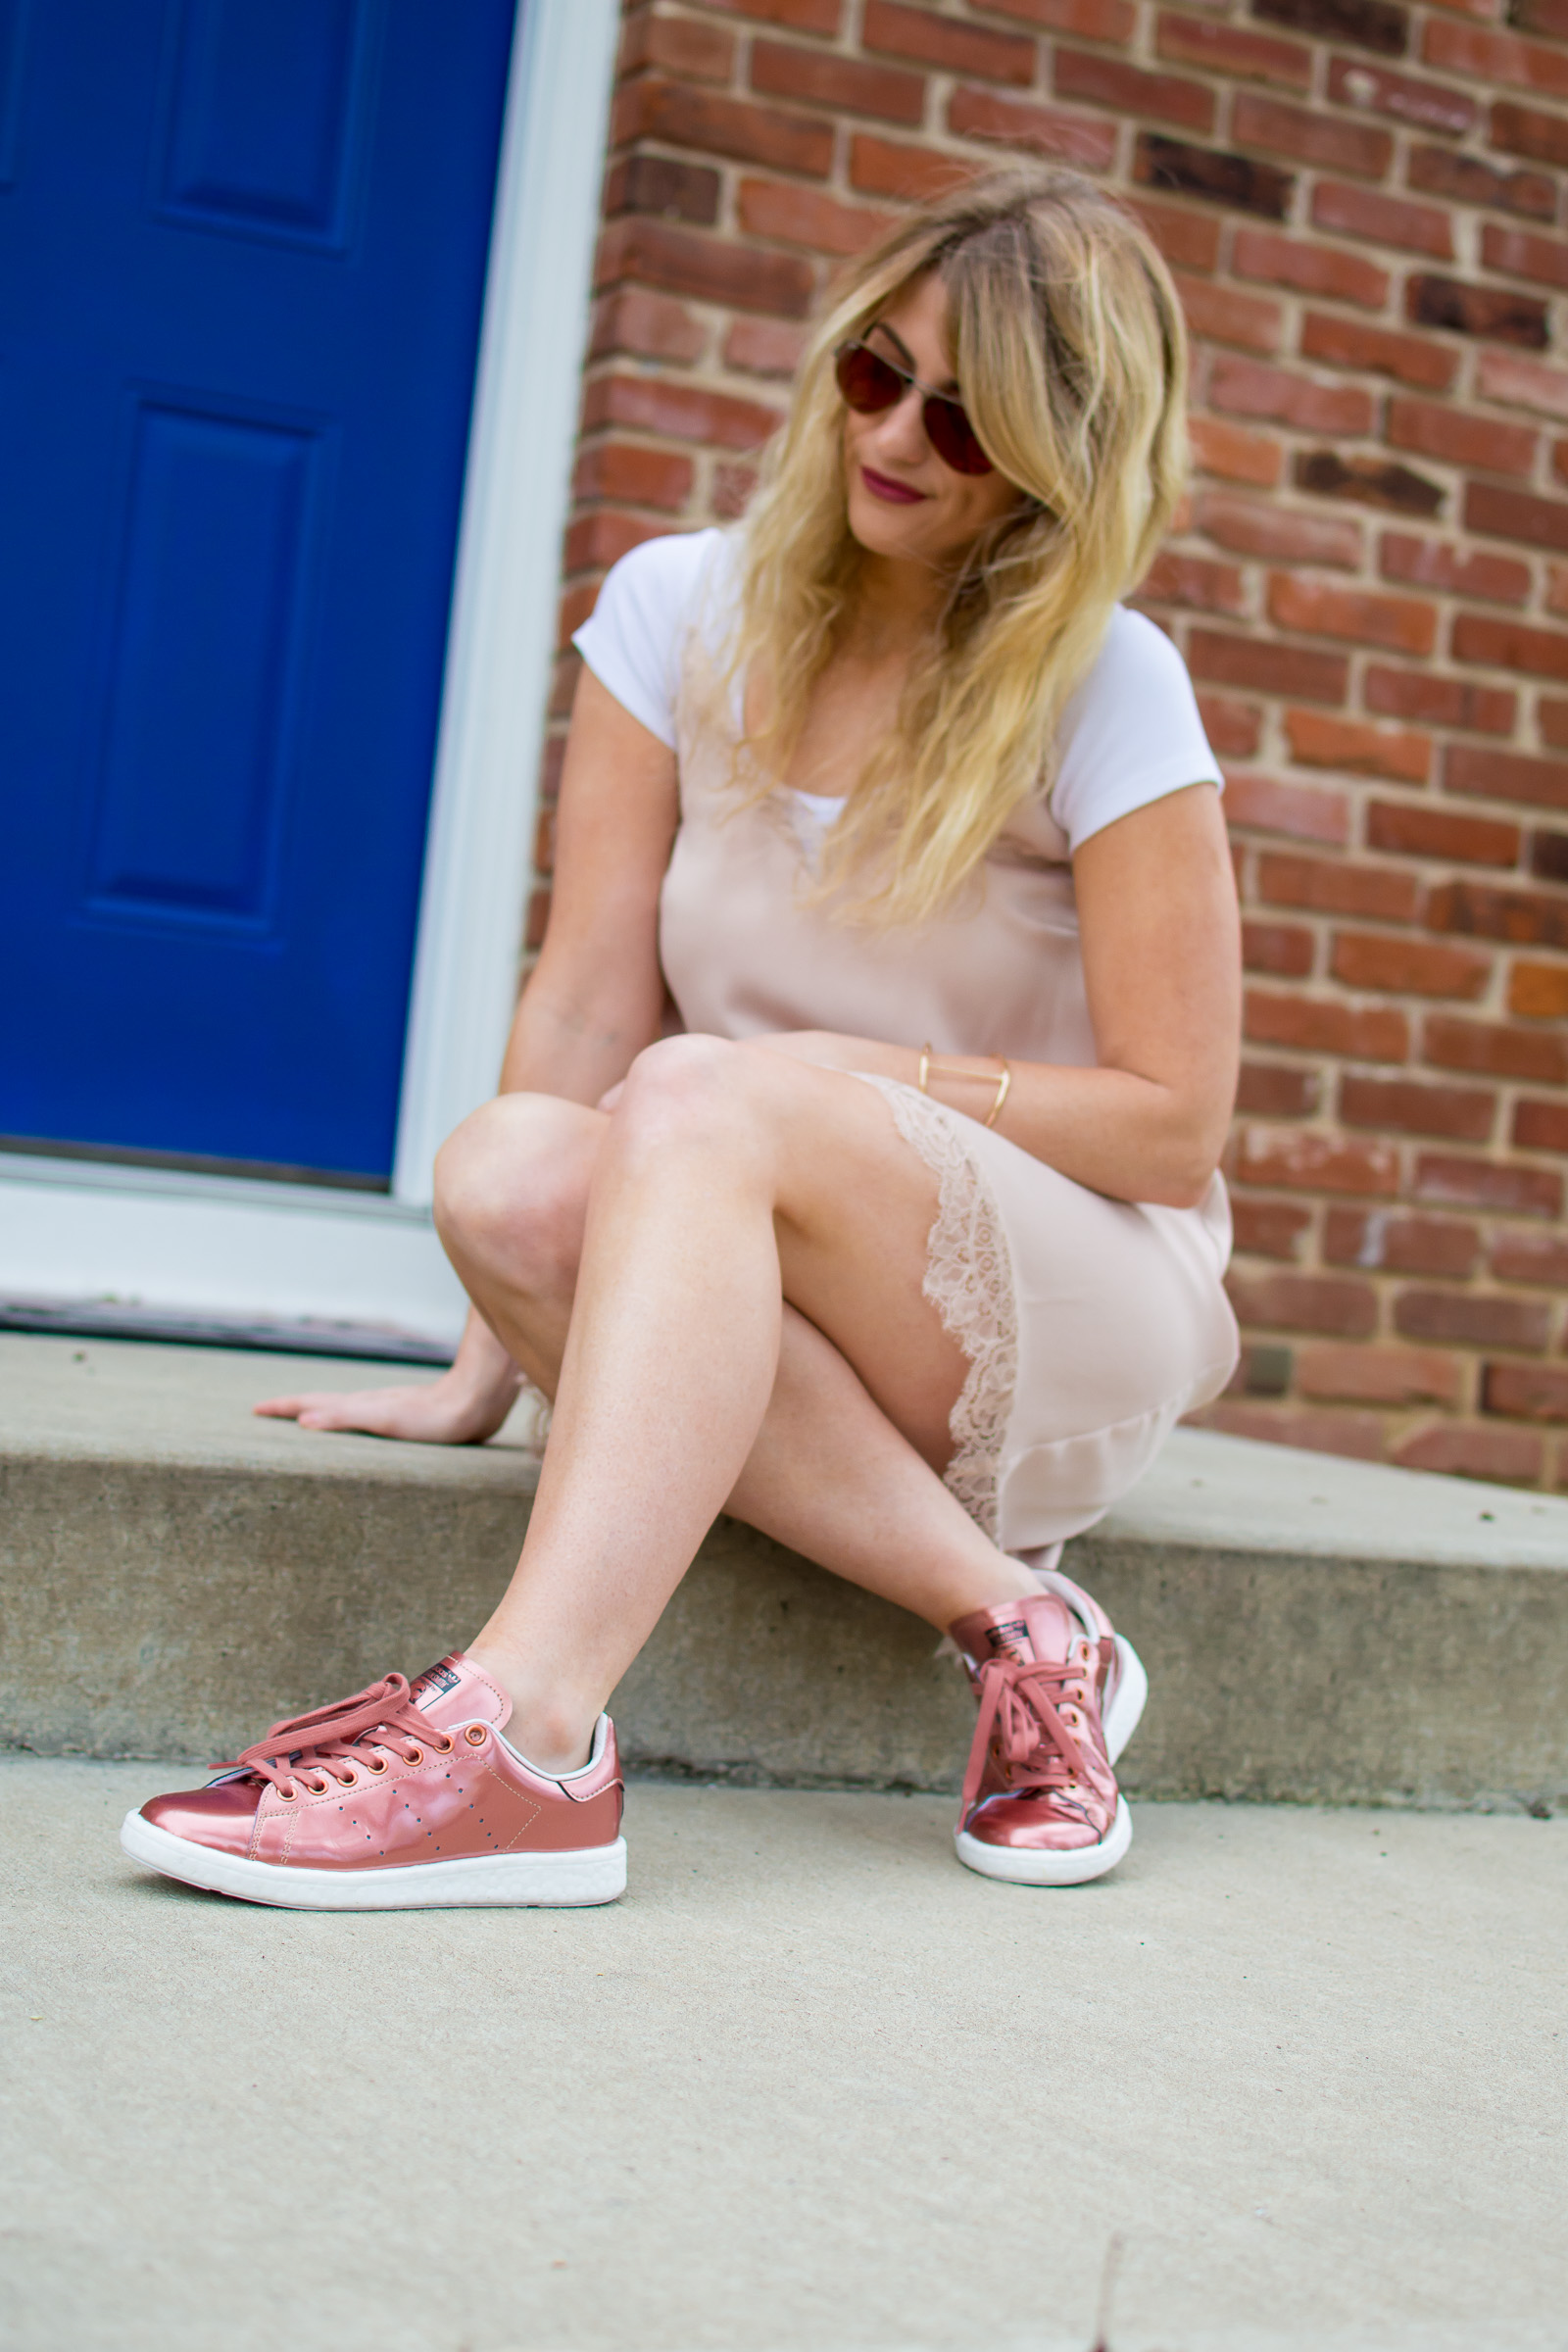 Outfit Idea: Slip Dress with Sneakers. | Ashley from Le Stylo Rouge